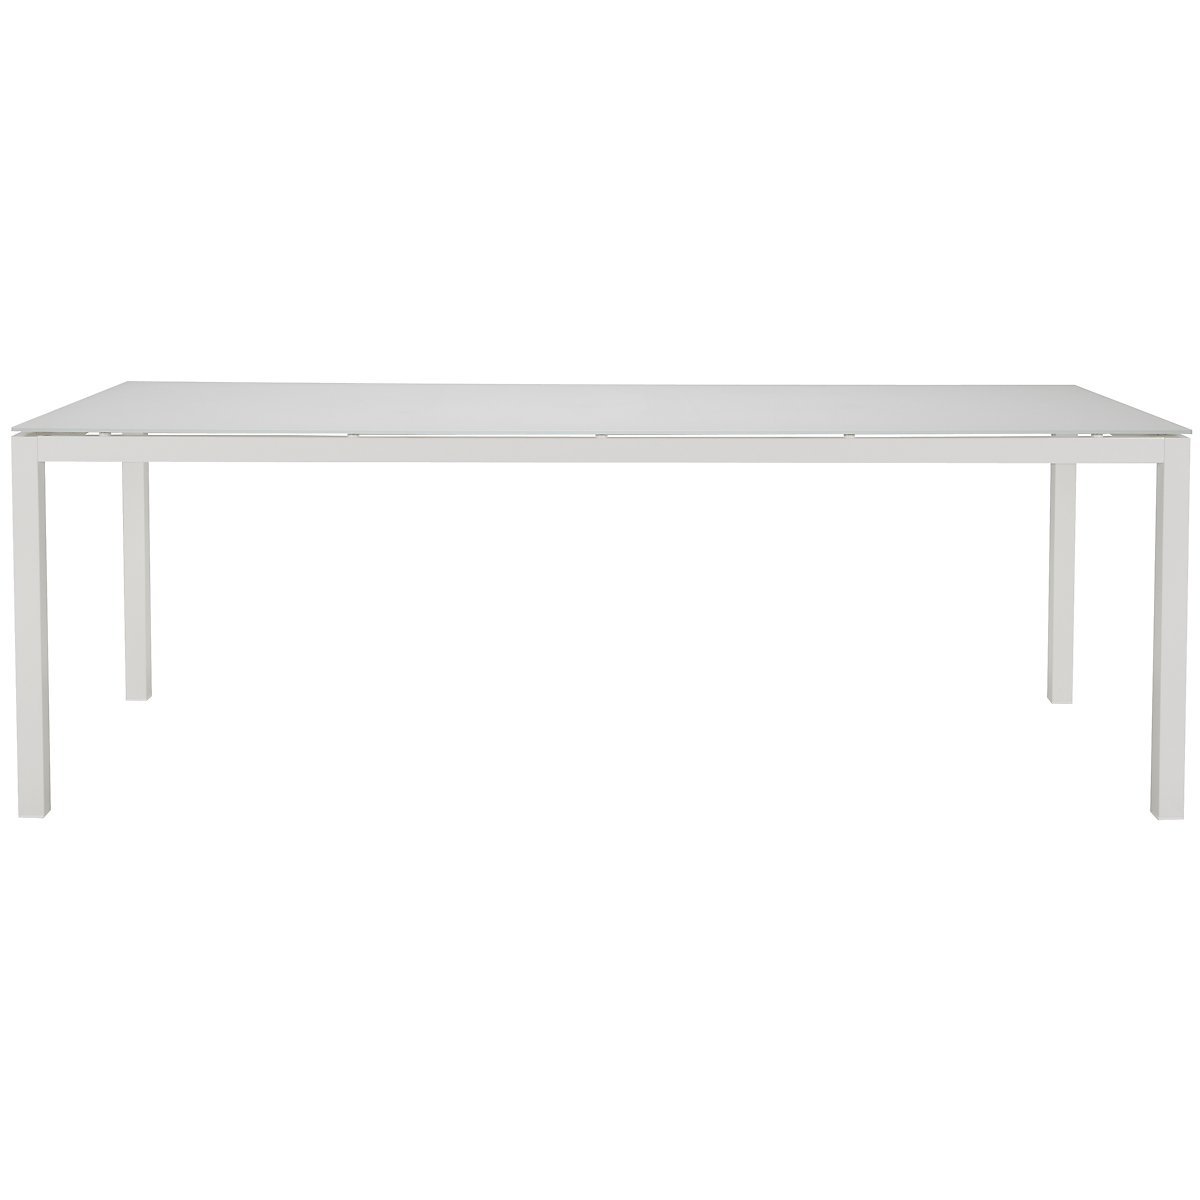 "Lisbon White 86"" Rectangular Table"